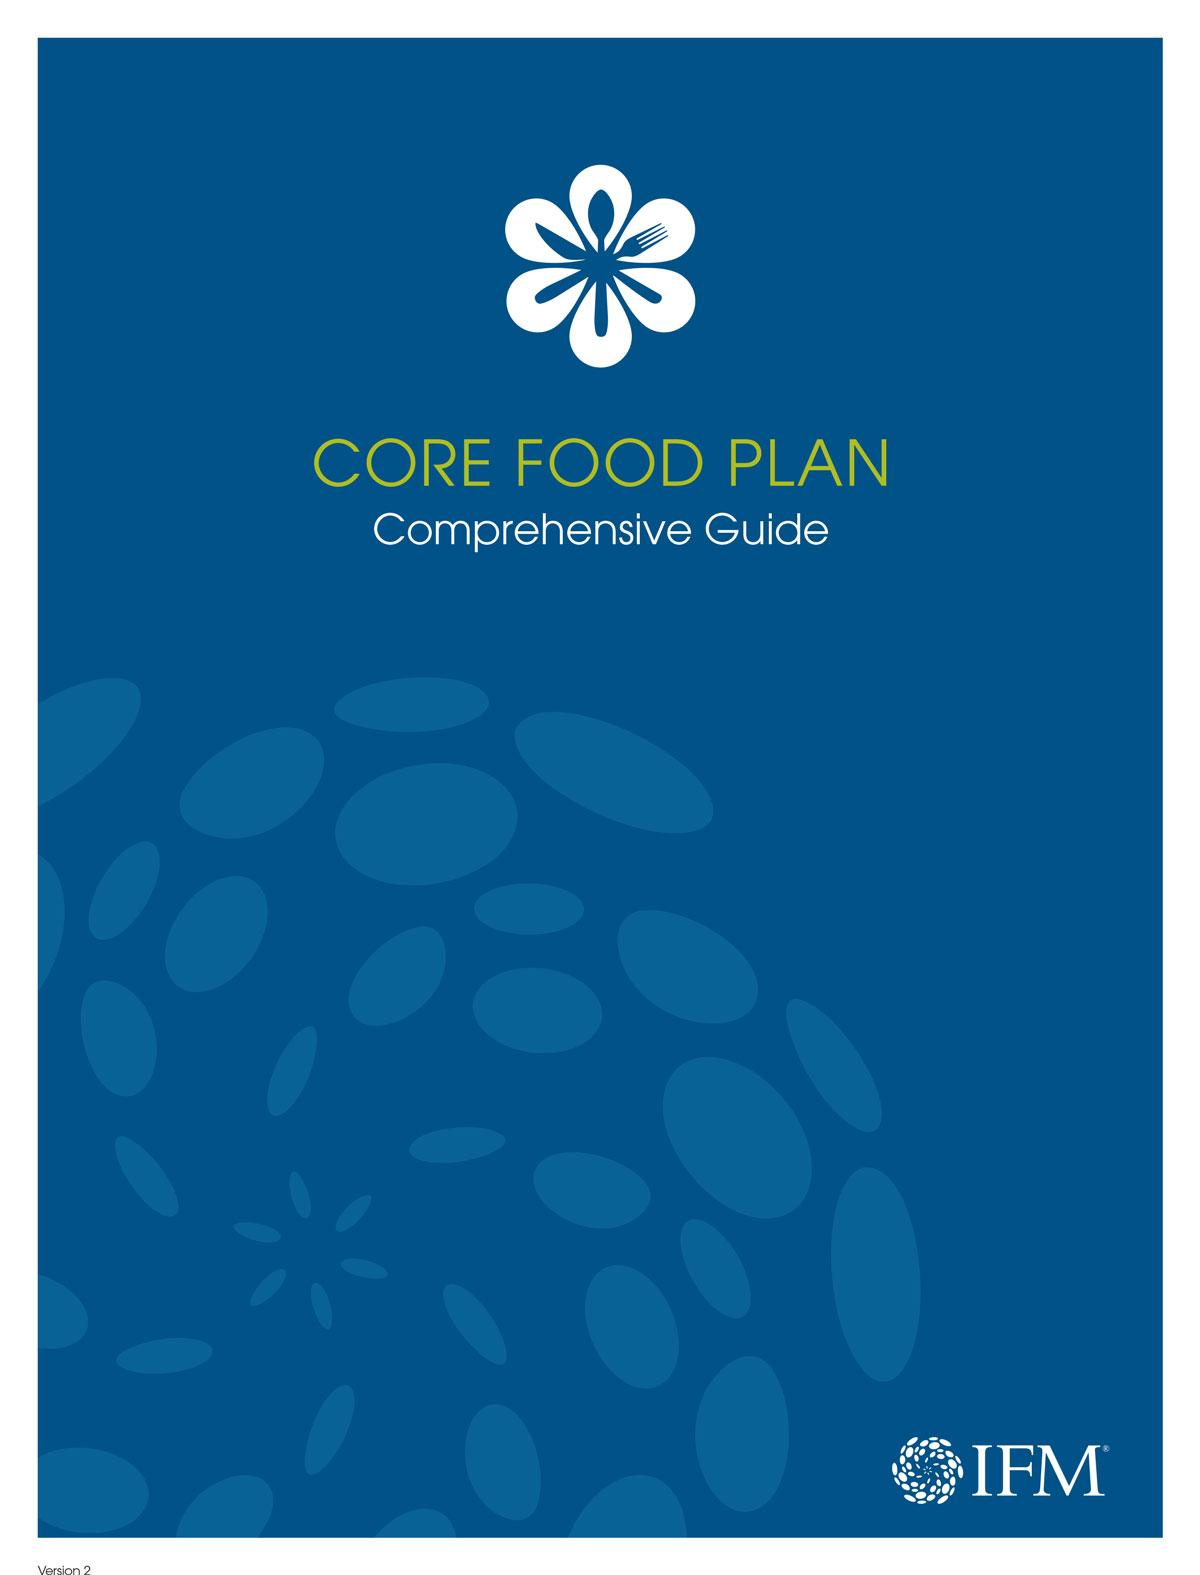 Core Food Plan Comprehensive Guide